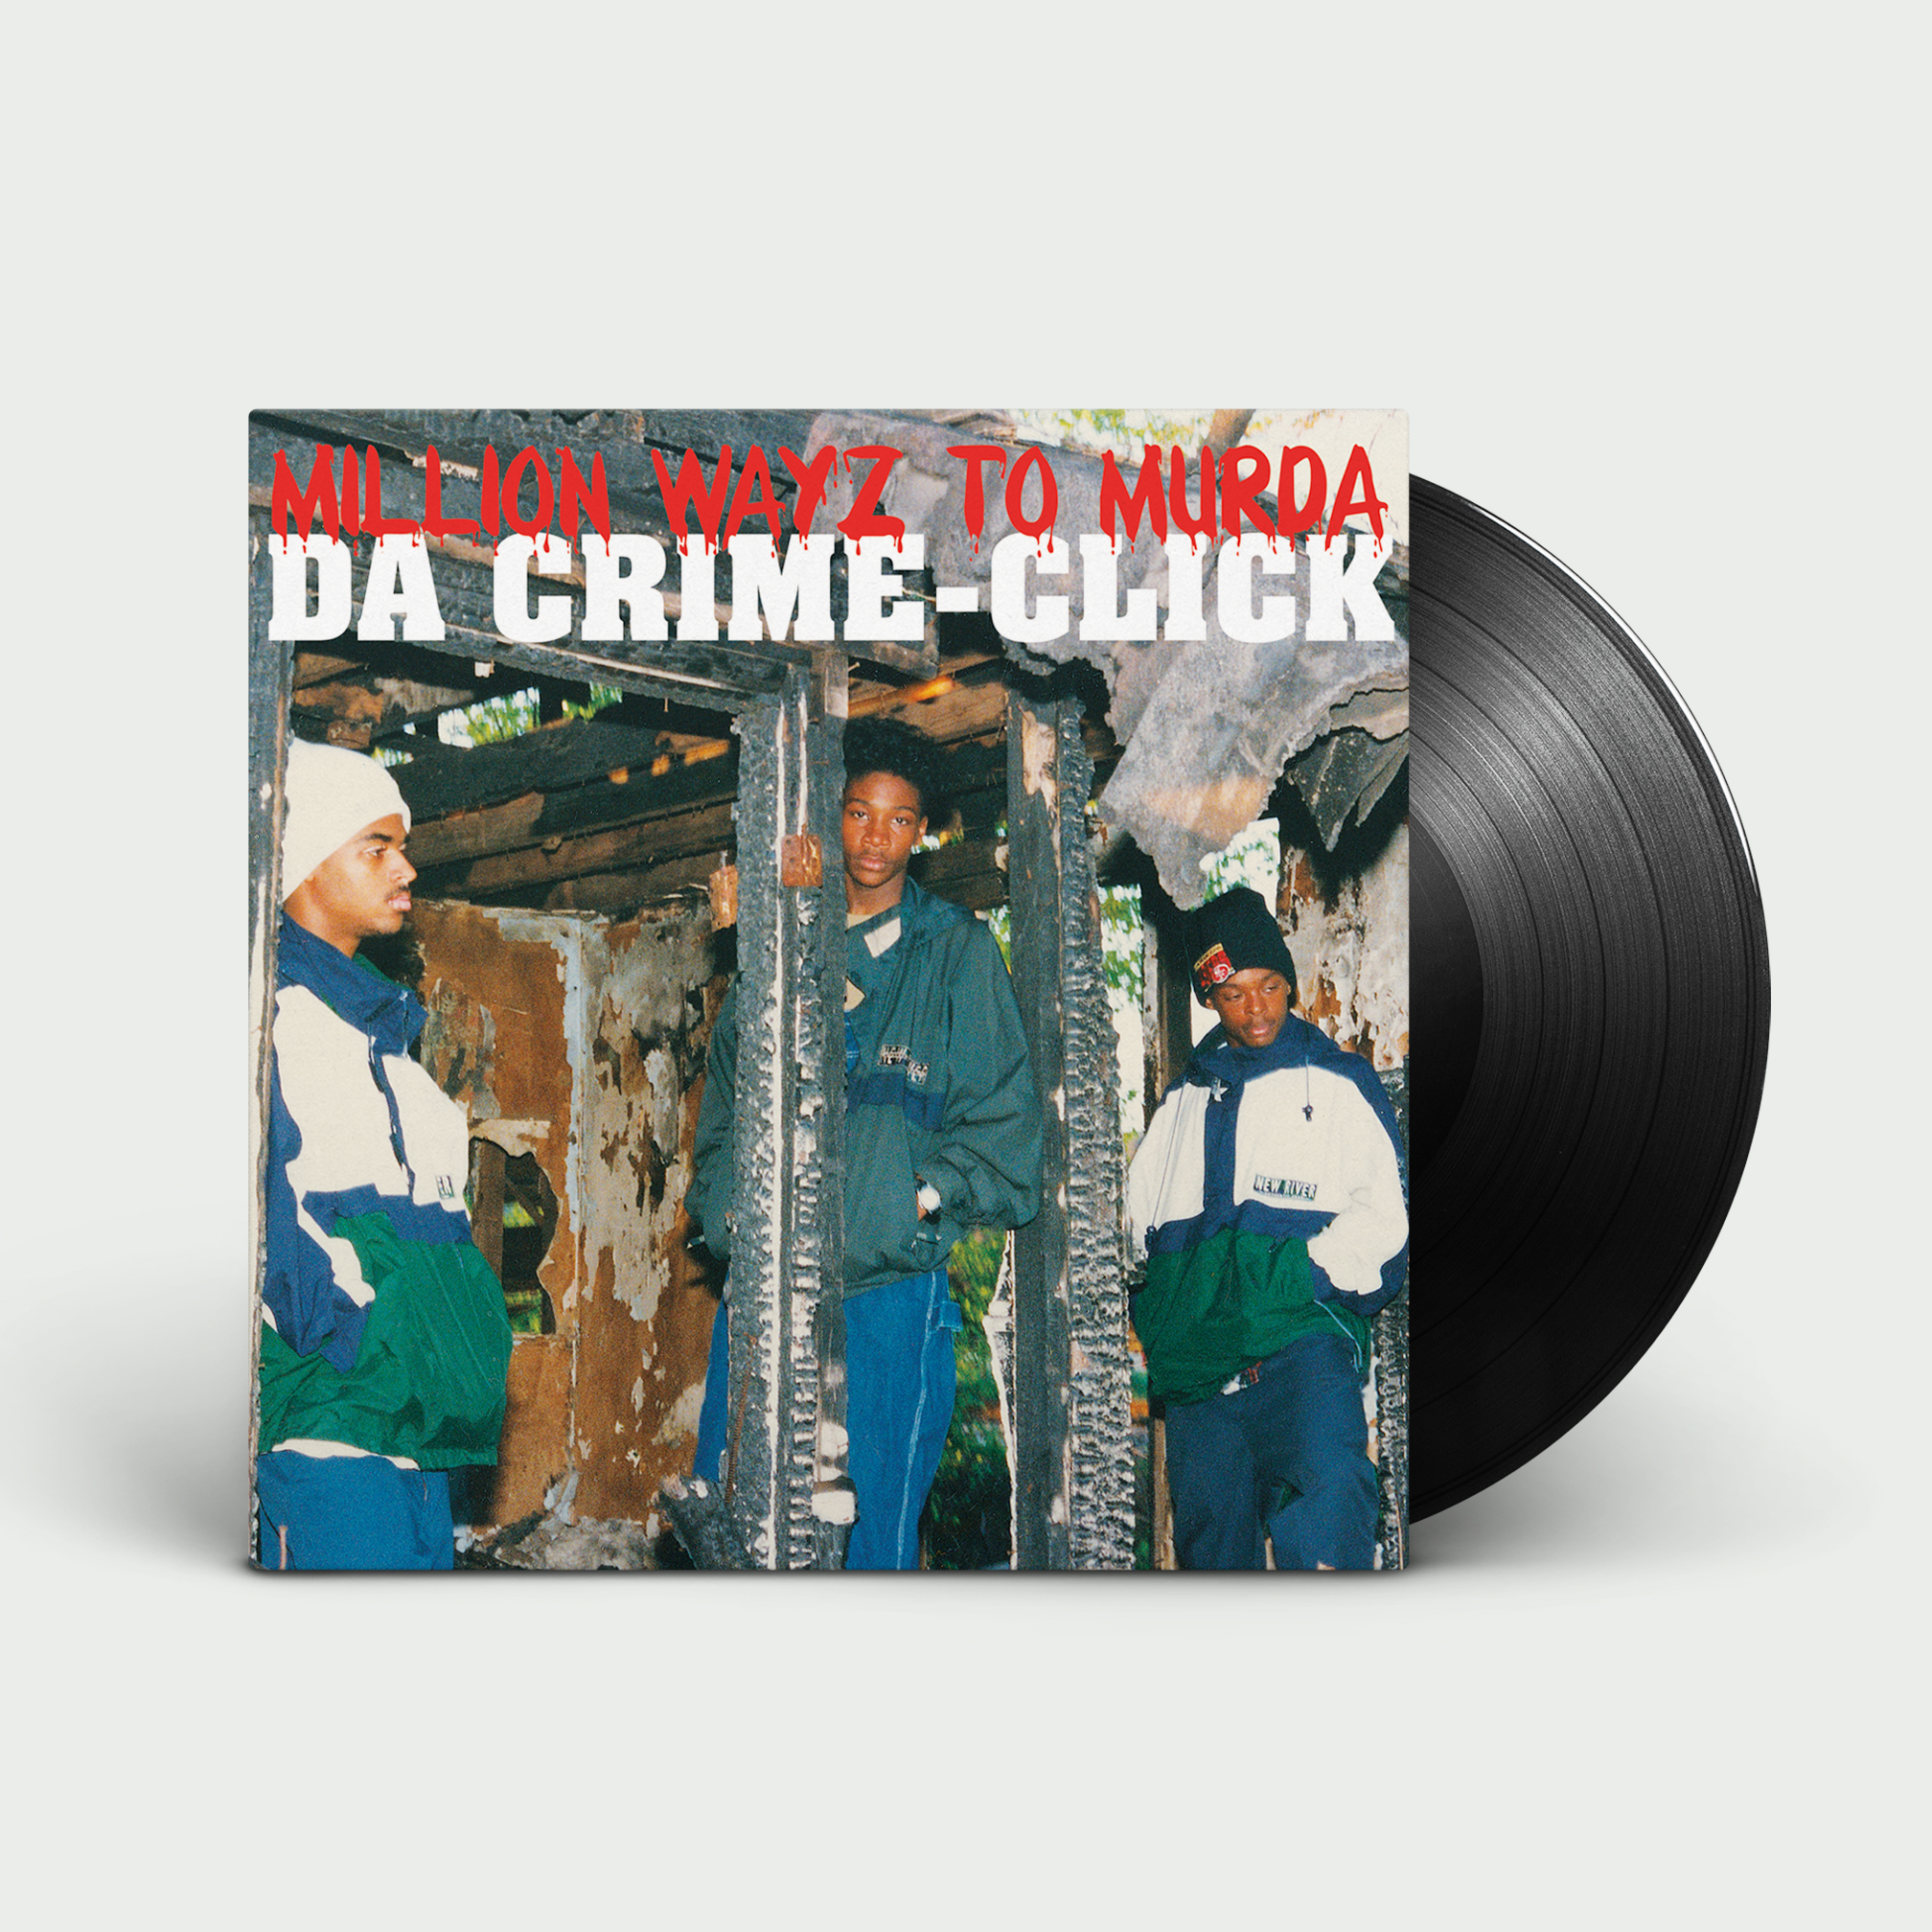 Da Crime Click - Million Wayz To Murda (Remastered)